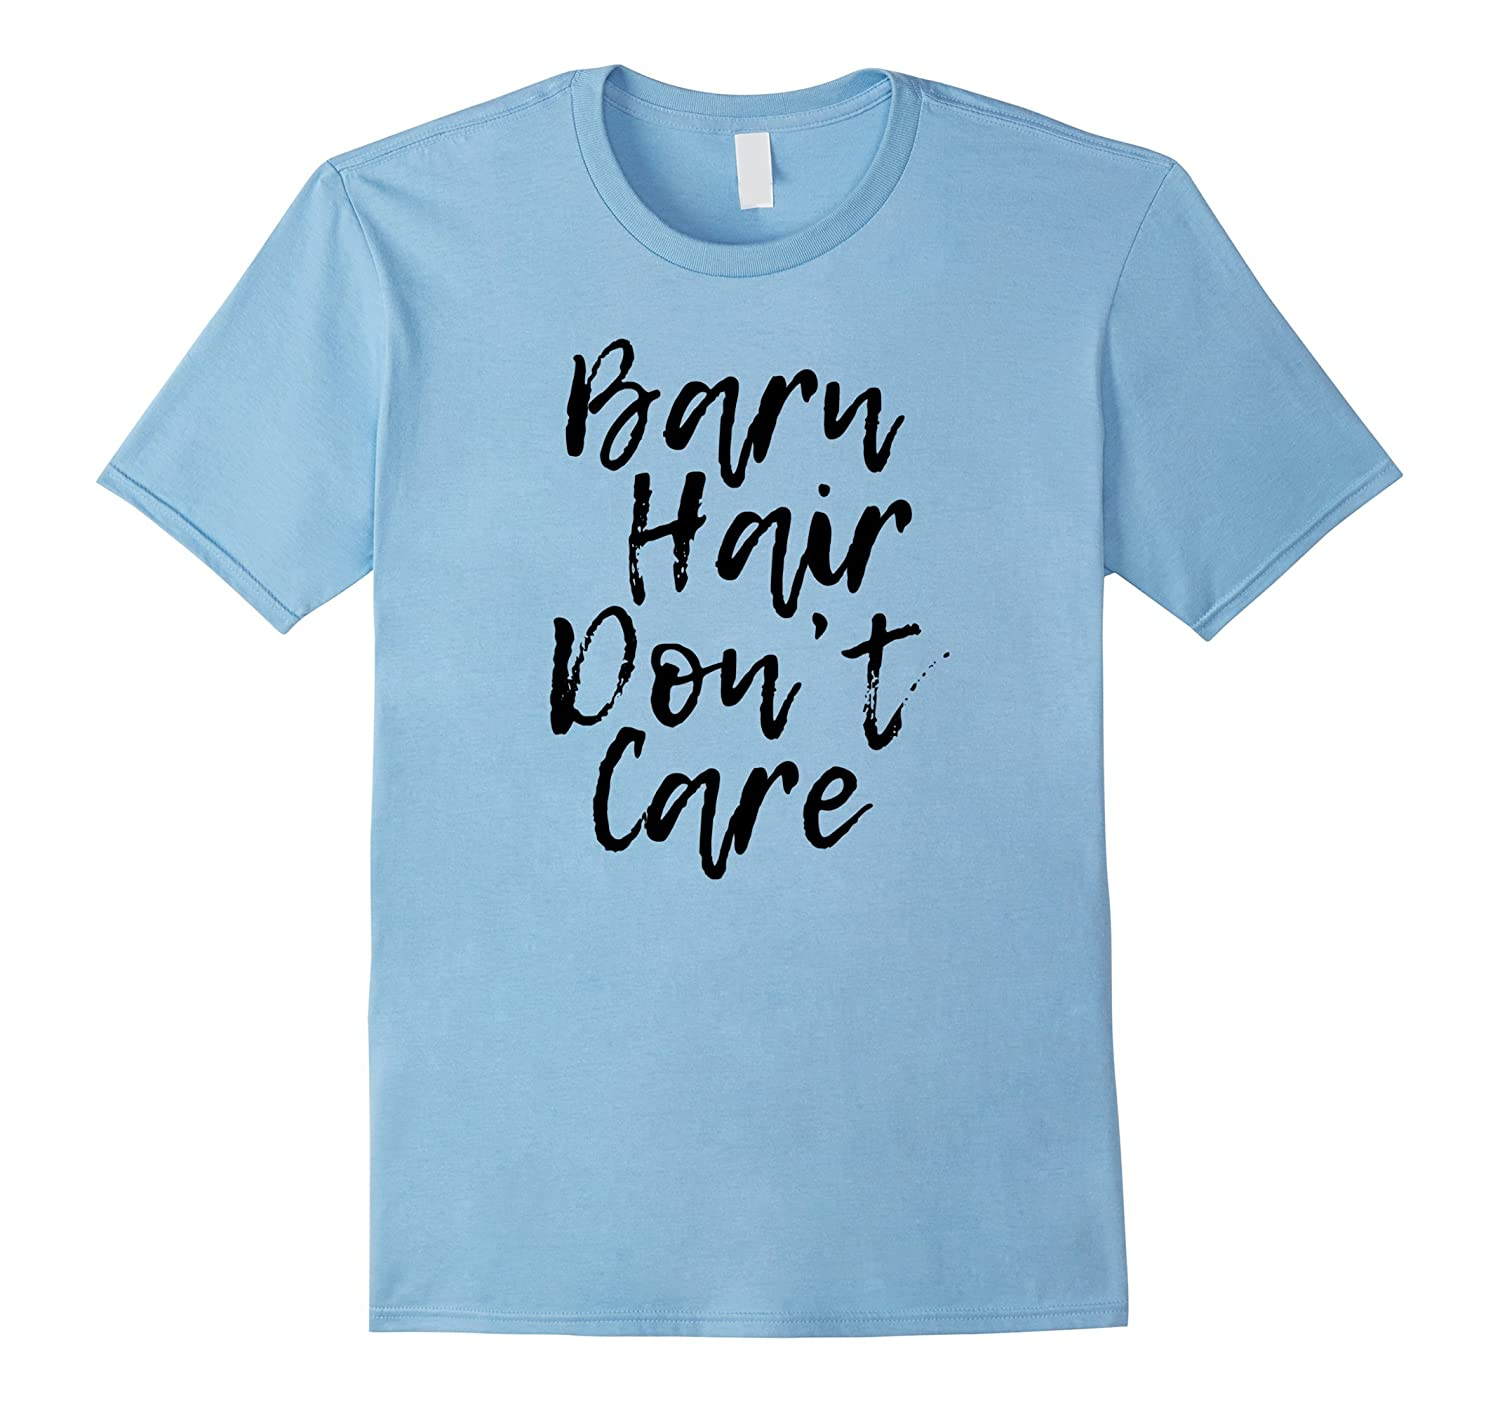 Barn Hair Don't Care Cute Horse T-Shirt for Women Girls Kids-AZP